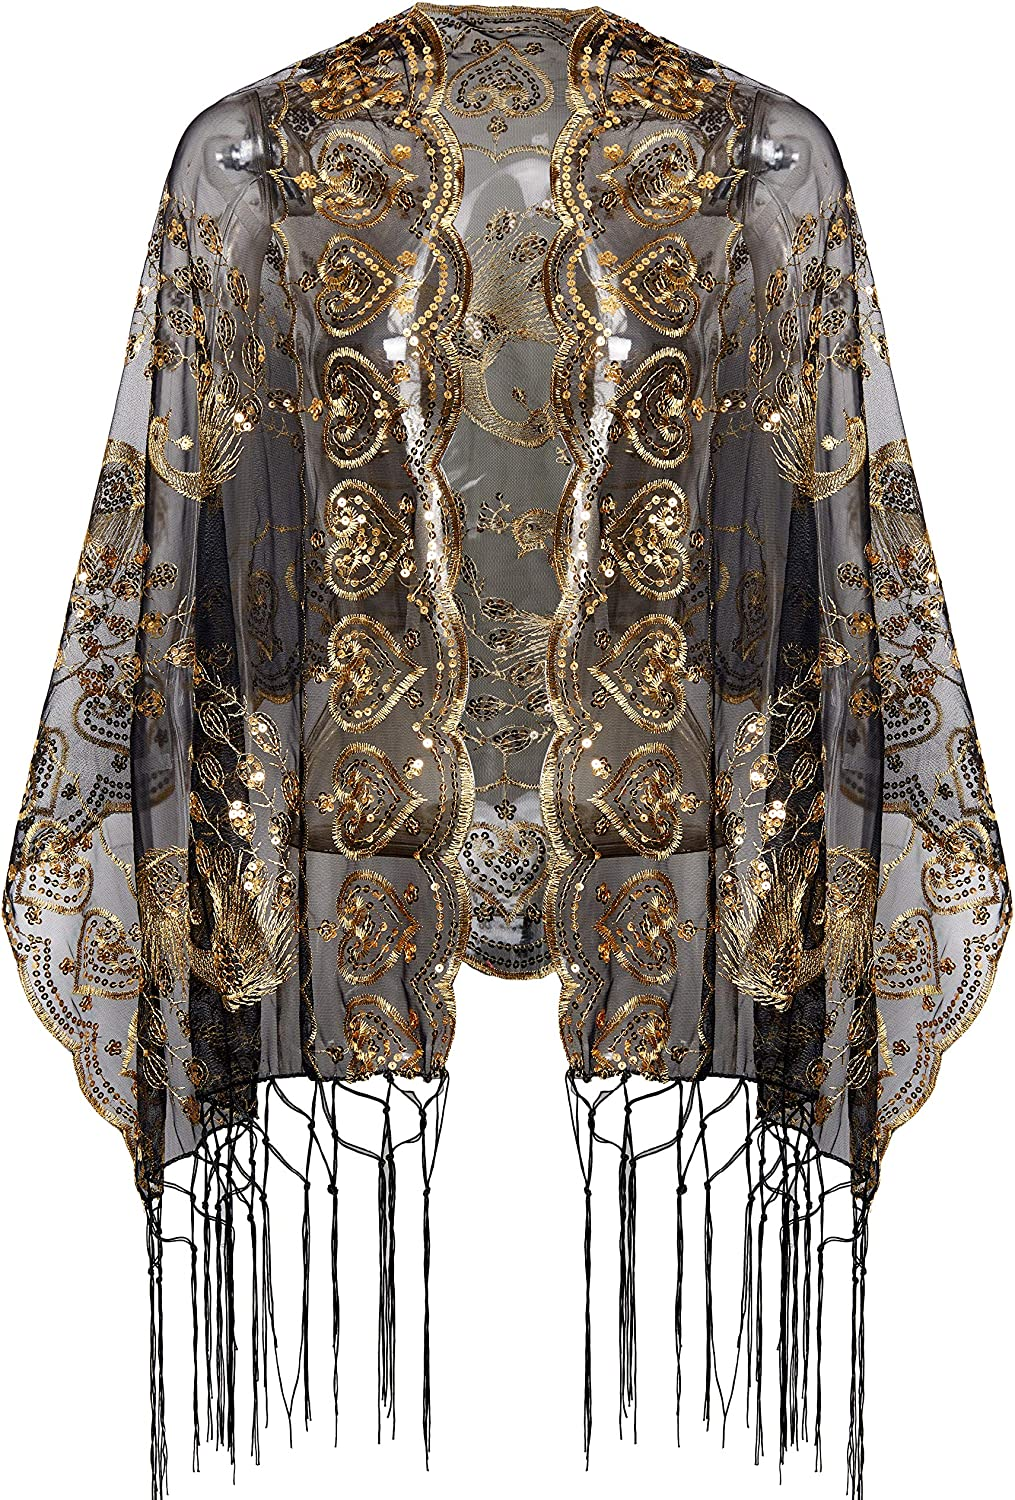 BABEYOND 1920s Sequined Peacock Shawl Fringed Max 61% OFF Cape free Evening Wraps